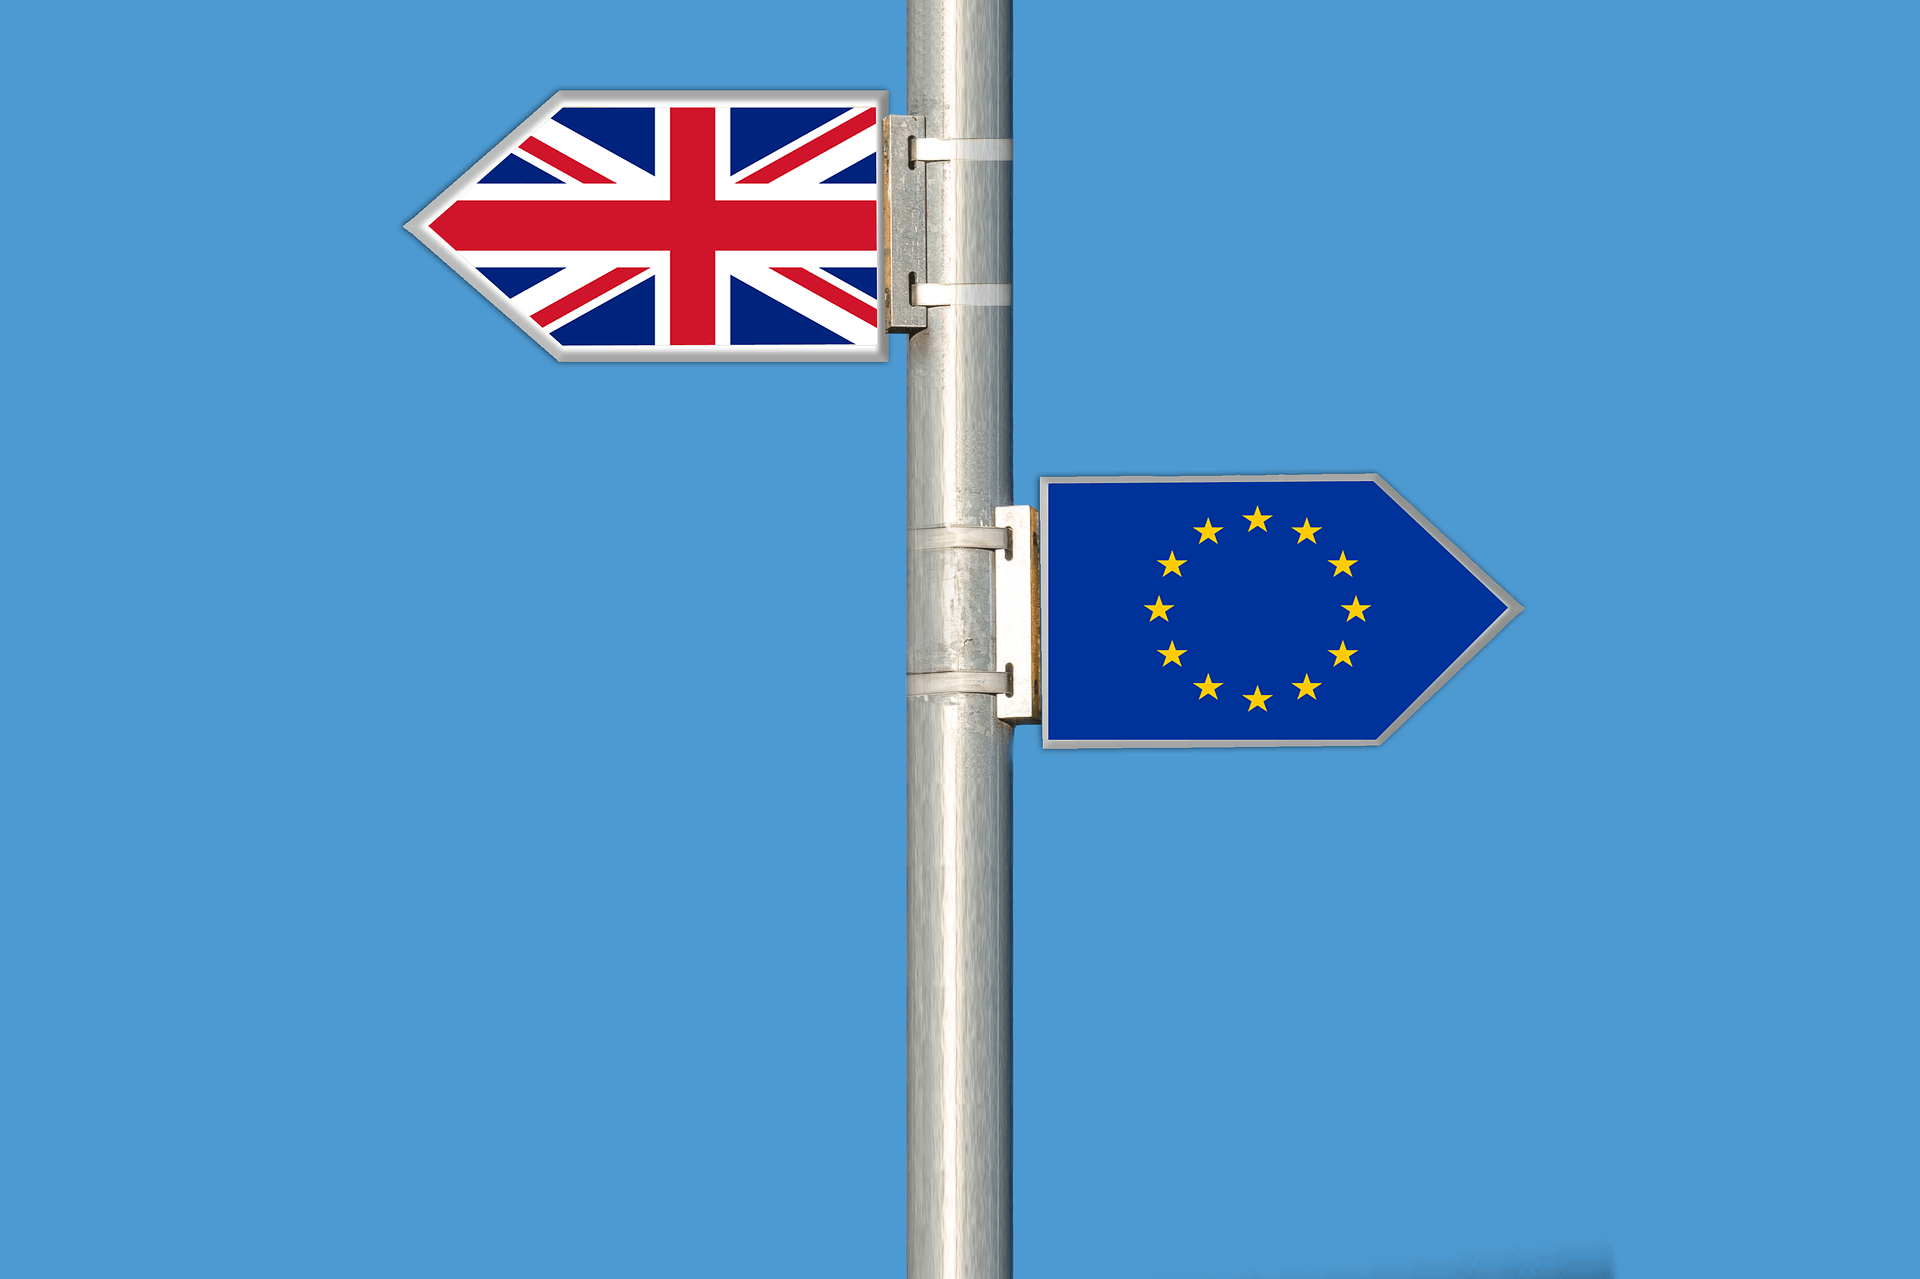 uk and european flag signs